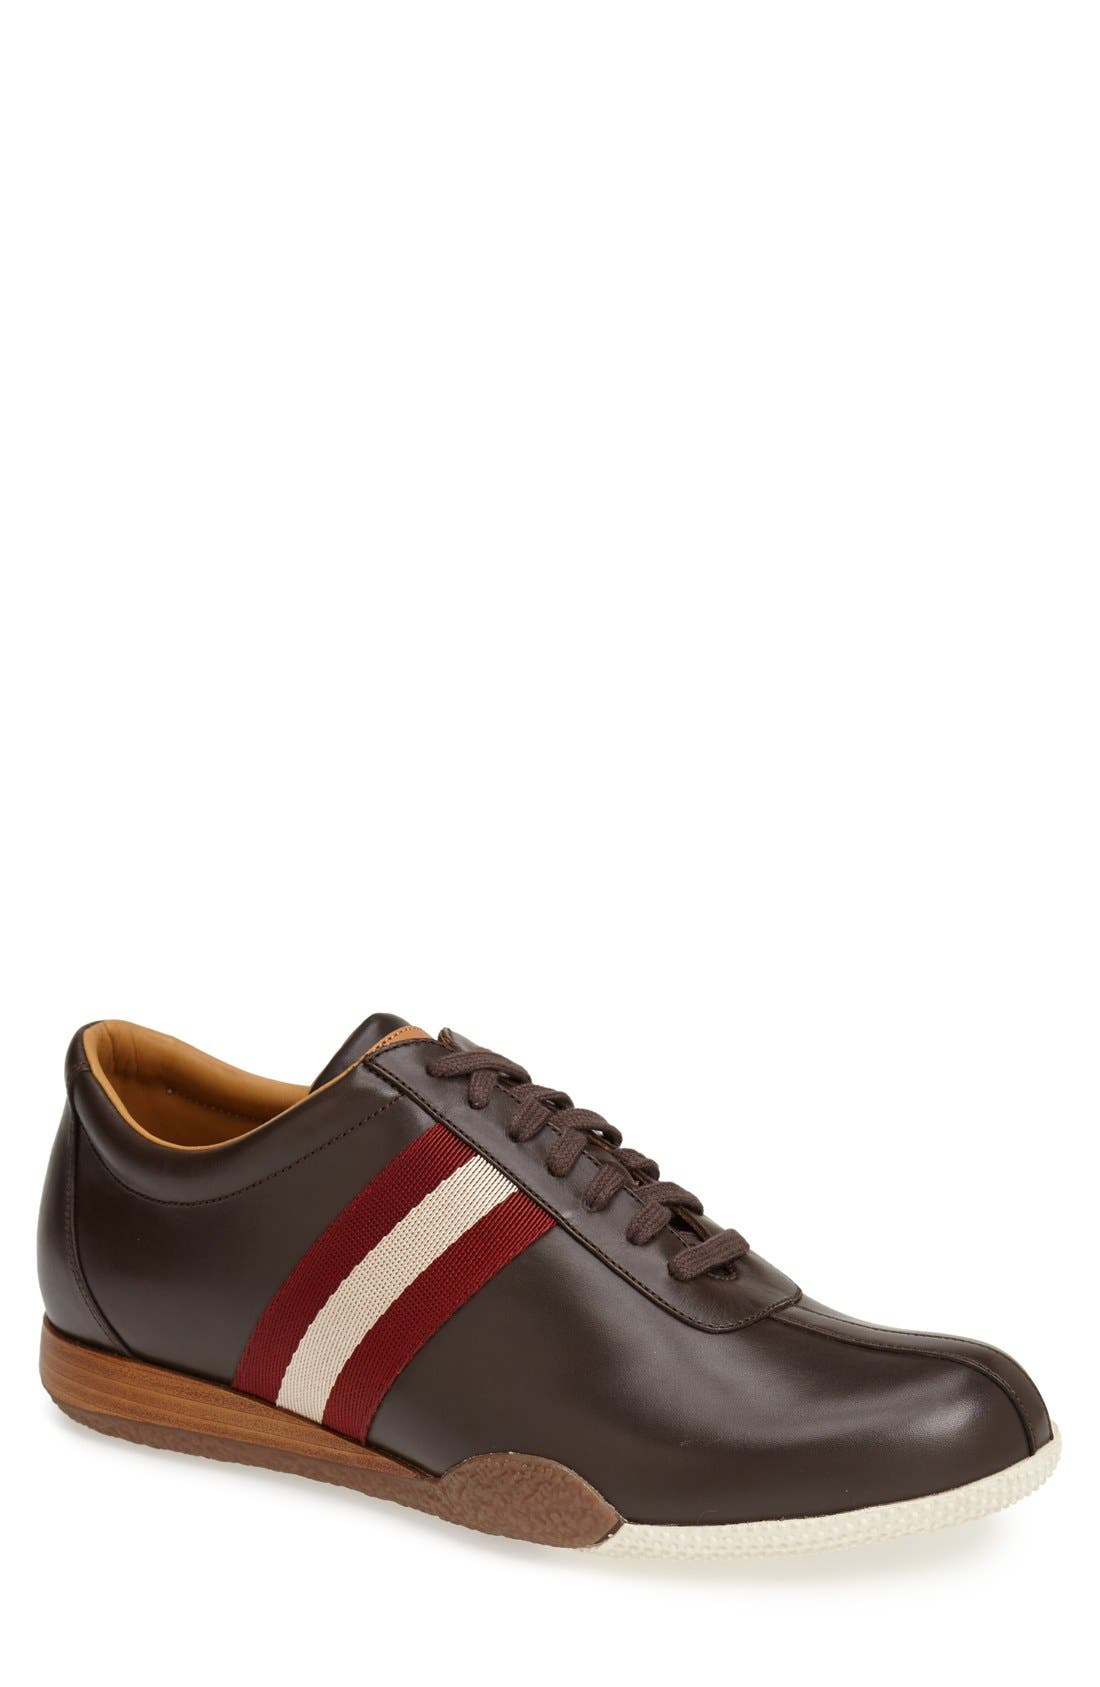 Main Image - Bally 'Freenew' Leather Sneaker (Online Only)